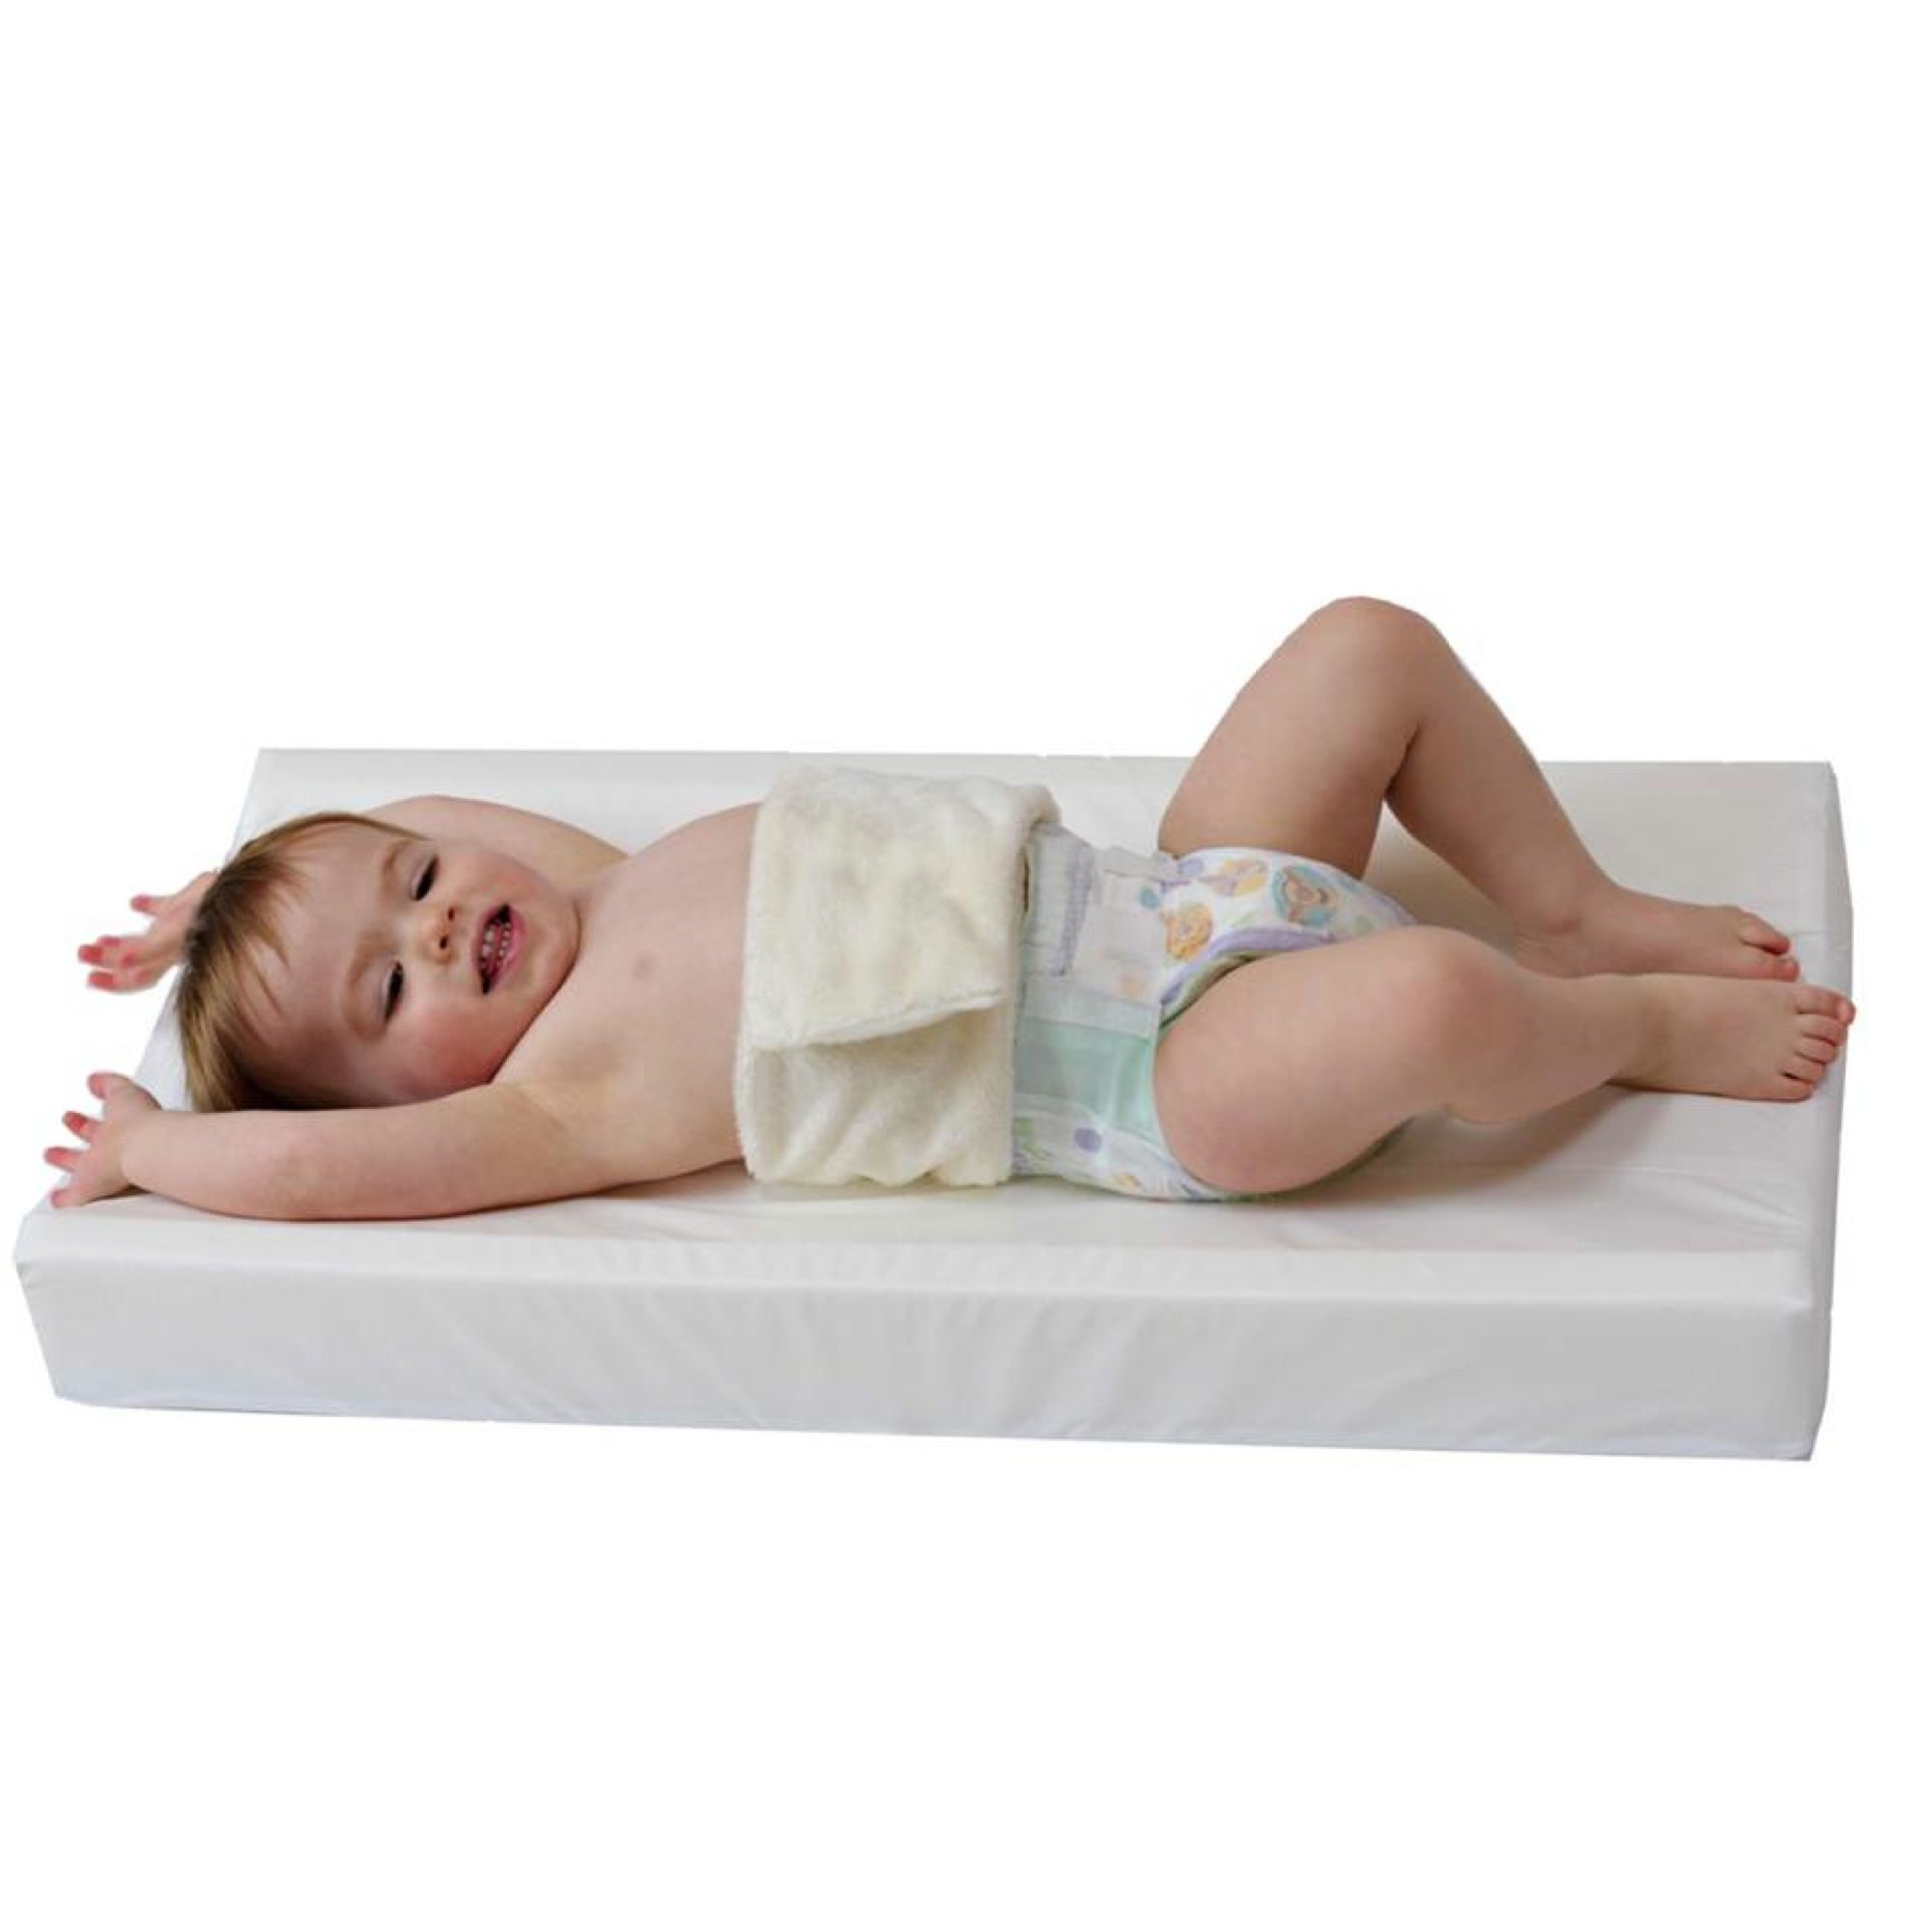 PooPoose Wiggle Free Diaper Changing Pad/ Changing Table Pad, White, 16'' X 32'' X 3.5''